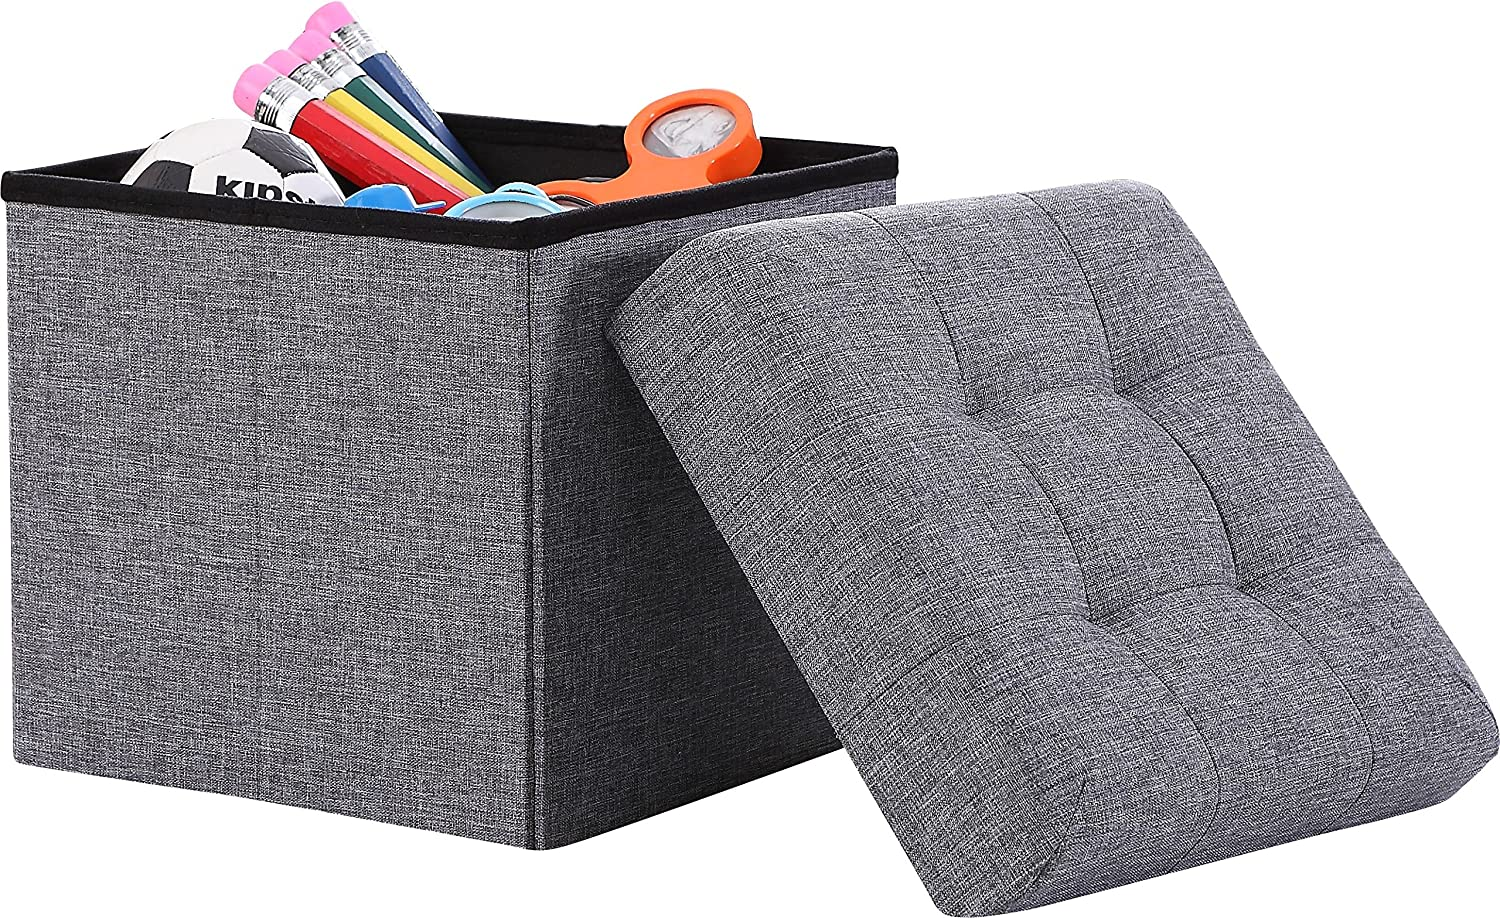 "Ornavo Home Foldable Tufted Linen Storage Ottoman Square Cube Foot Rest Stool/Seat - 15"" x 15"" x 15"" (Grey)"